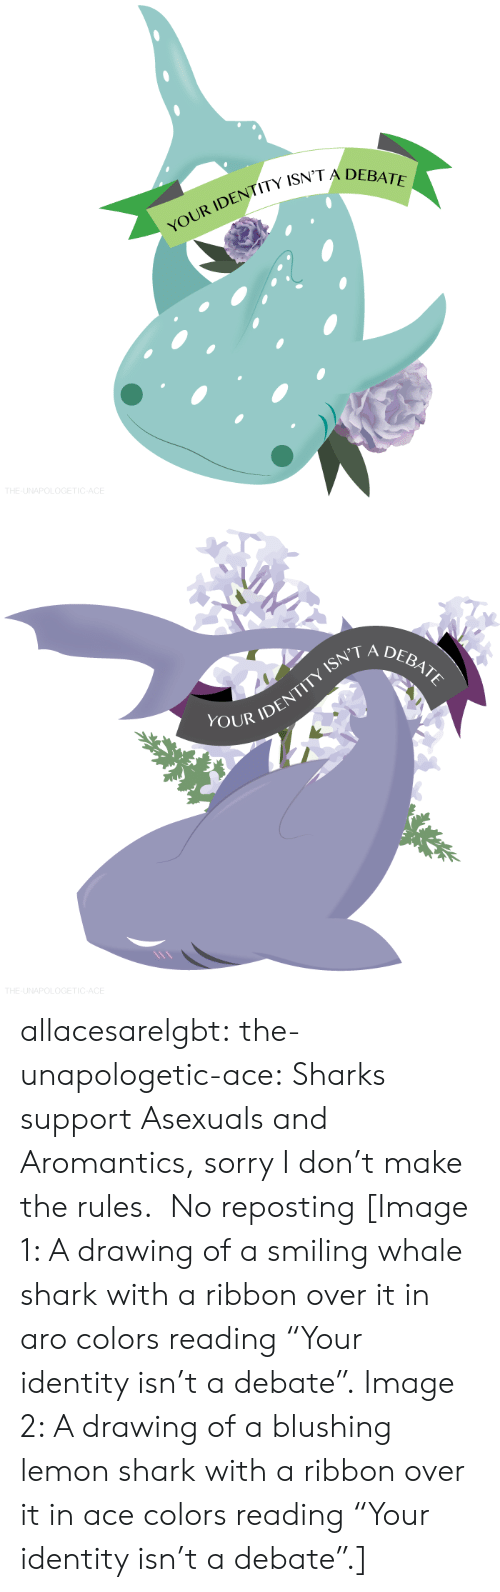 """Sorry, Target, and Tumblr: YOUR IDENTITY ISN  THE-UNAPOLOGETIC-ACE   ISN'T A  DEBATE  OUR IDENT  THE-UNAPOLOGETIC-ACE allacesarelgbt:  the-unapologetic-ace:  Sharks support Asexuals and Aromantics, sorry I don't make the rules. No reposting  [Image 1: A drawing of a smiling whale shark with a ribbon over it in aro colors reading""""Your identity isn't a debate"""". Image 2: A drawing of a blushing lemon shark with a ribbon over it in ace colors reading""""Your identity isn't a debate"""".]"""